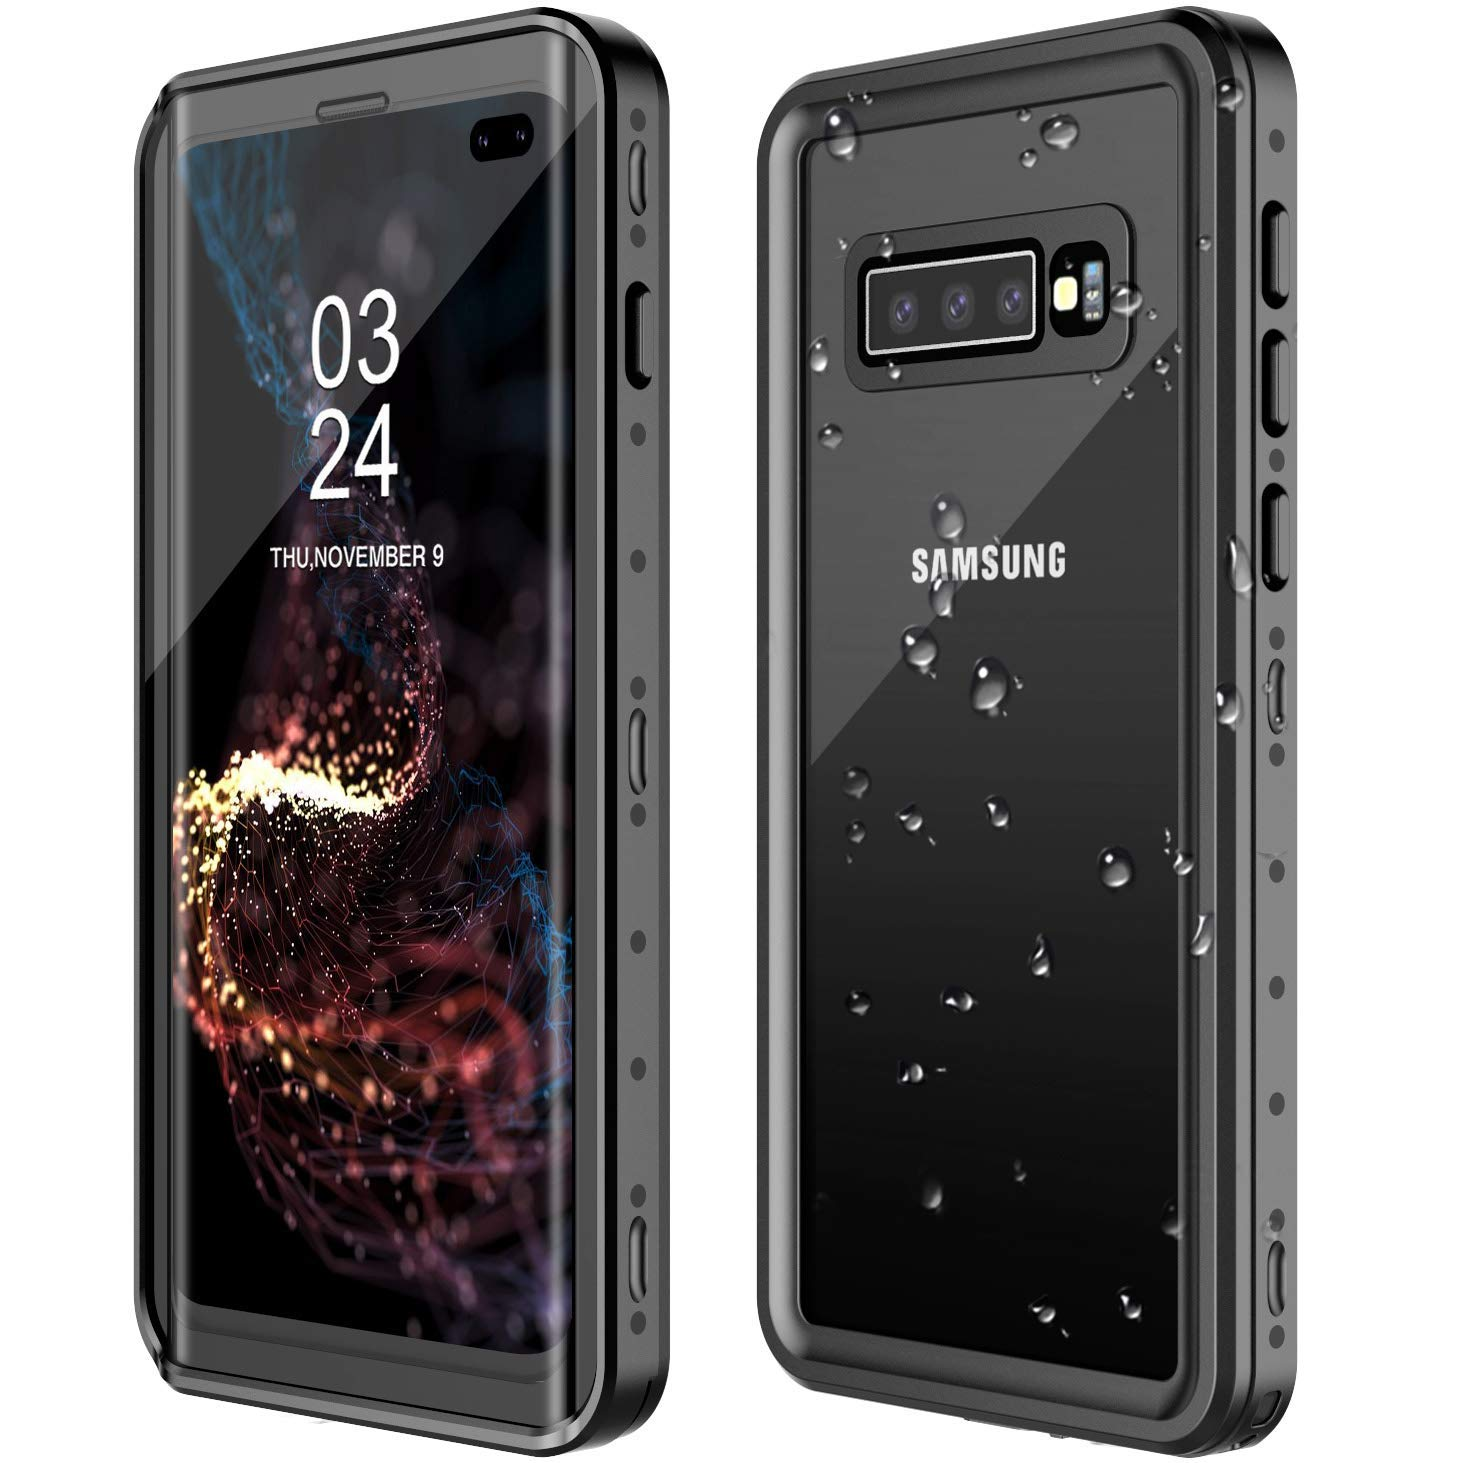 GOLDJU Samsung Galaxy S10 Plus Waterproof Case,S10 Plus Case Built in Screen Protector 360° Full Body Protective Shockproof Dirtproof Sandproof IP68 ...